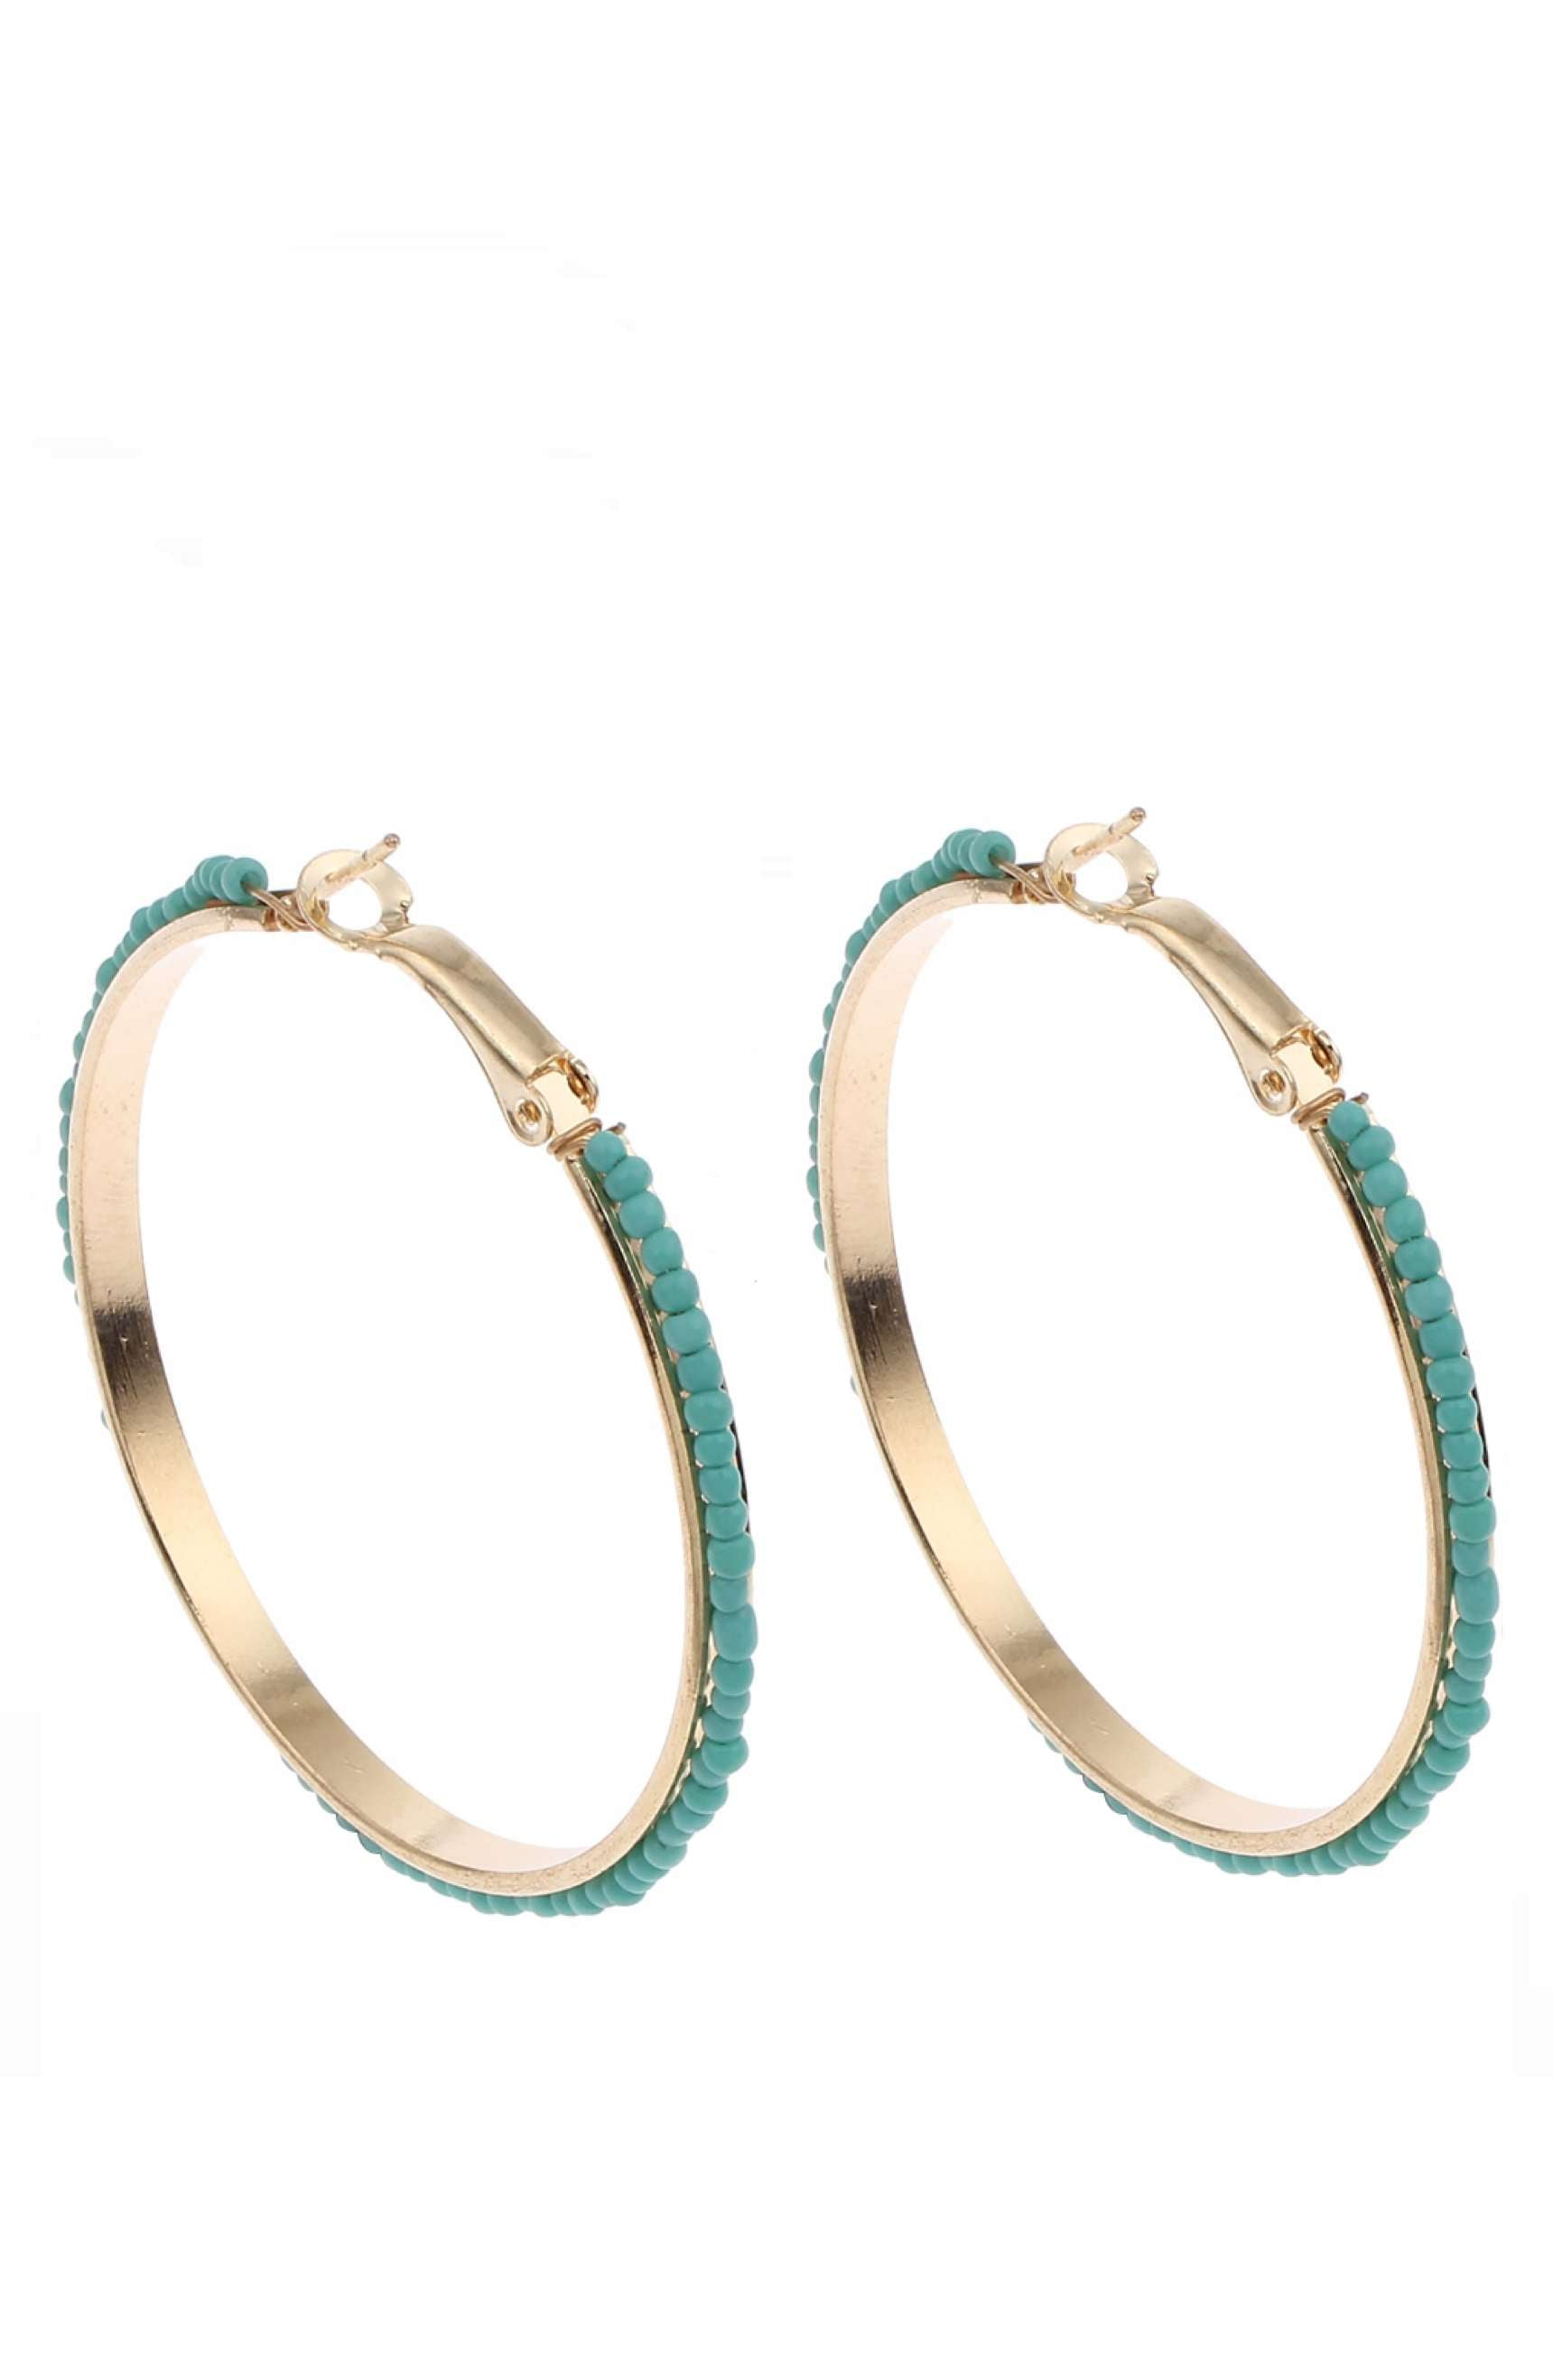 18K Gold Turquoise Bead Hoop Earrings